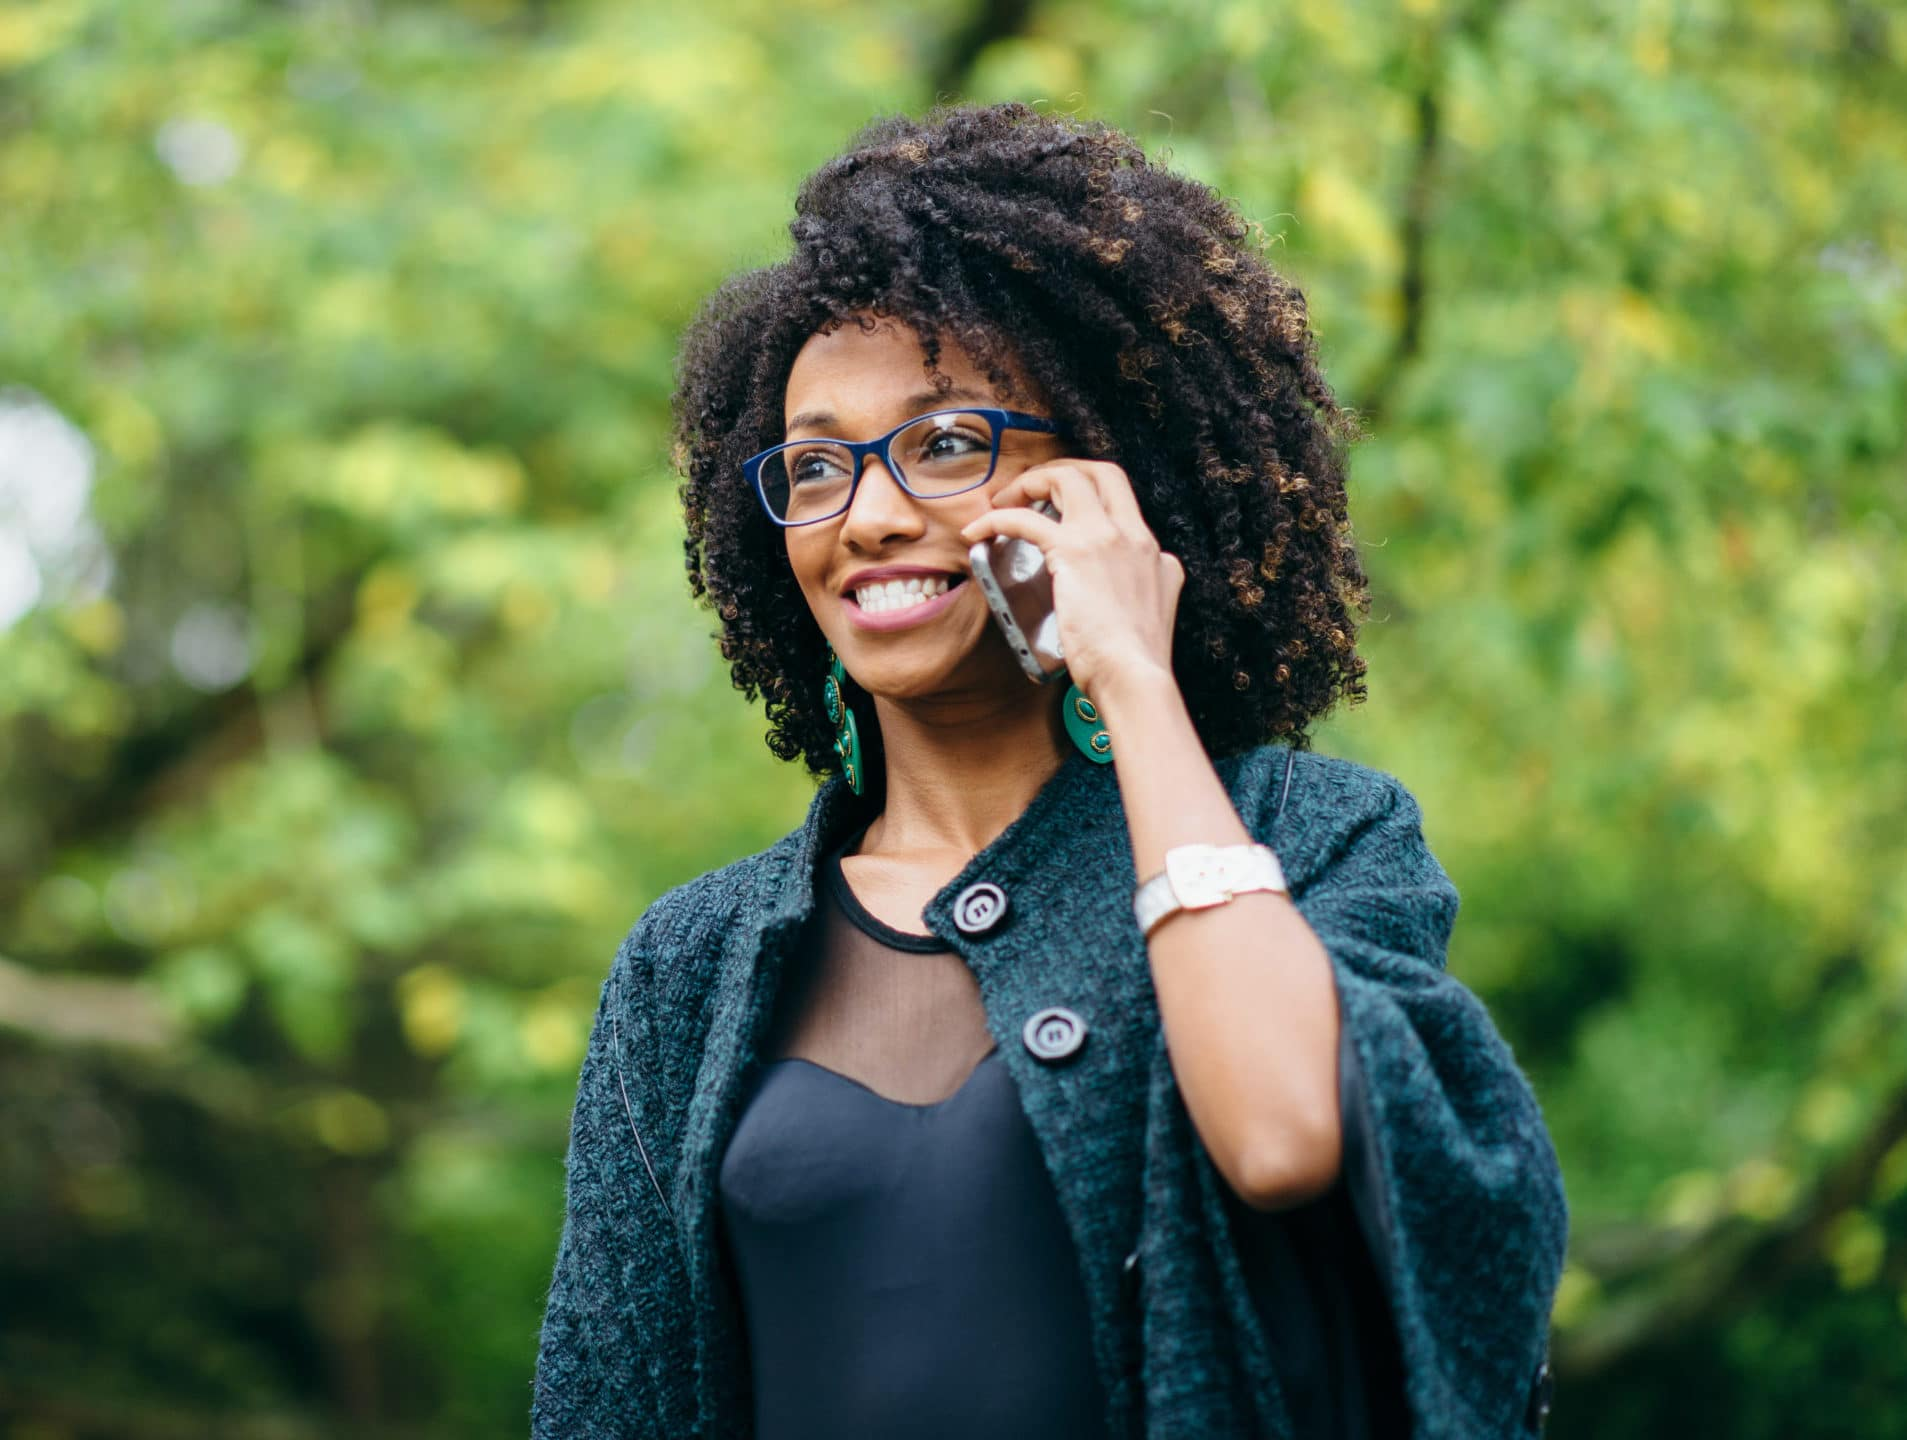 Happy black woman standing outside during a mobile phone call